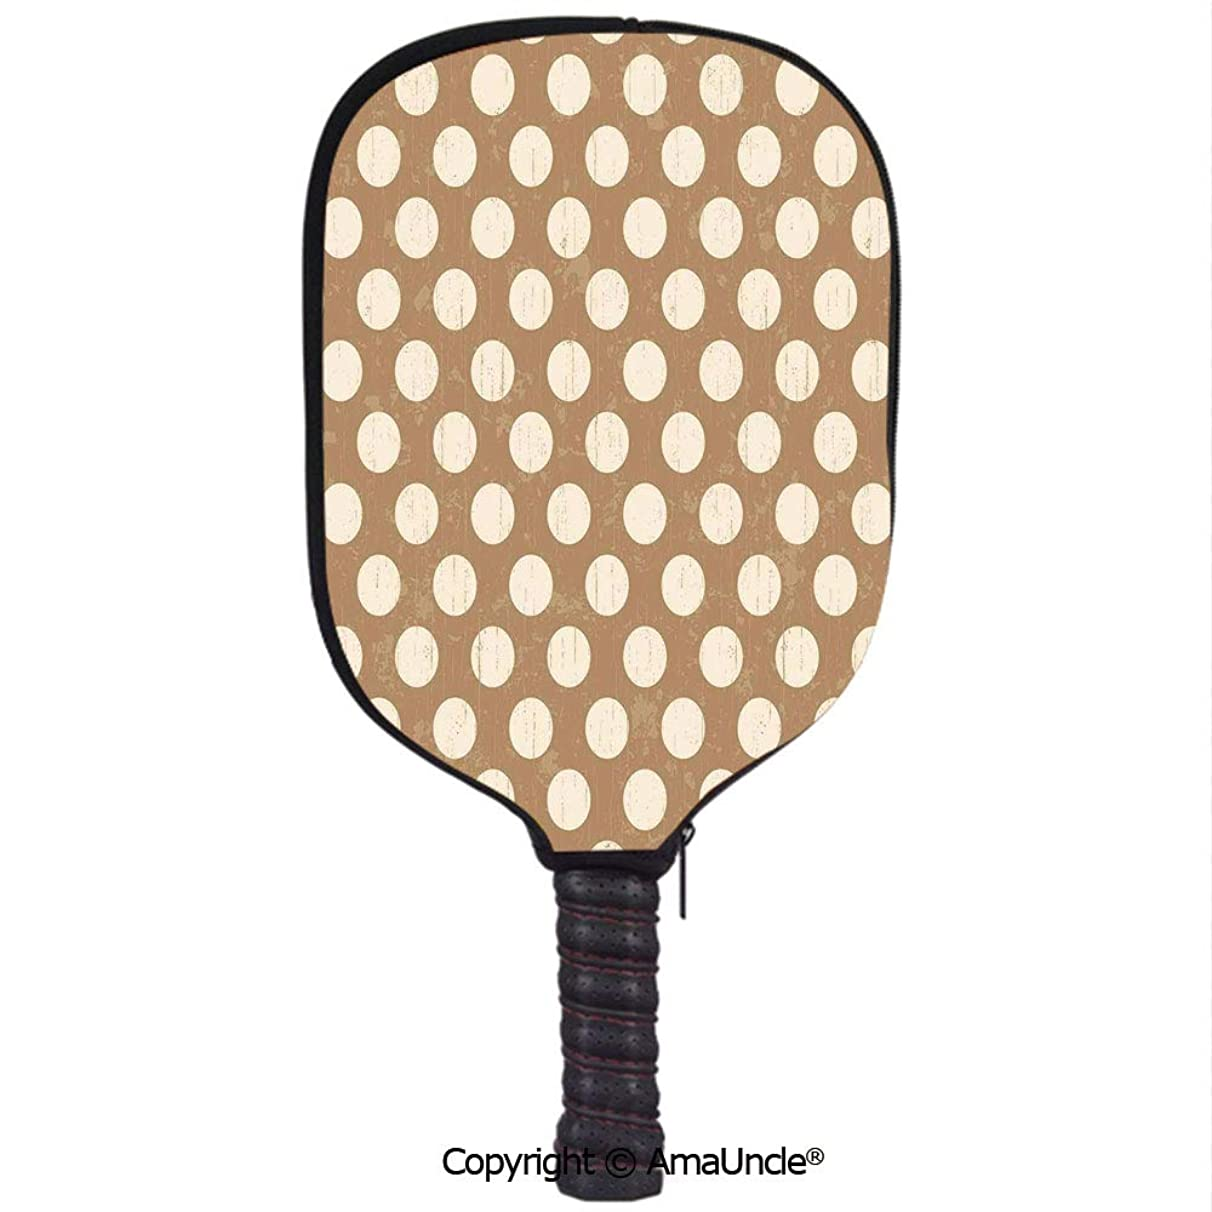 SCOXIXI 3D Pickleball Paddle Racket Cover Case,Kaleidoscopic Flora Pattern Folkloric Circular Round Disk Shapes Doodle Dots DecorativeCustomized Racket Cover with Multi-Colored,Sports Accessories